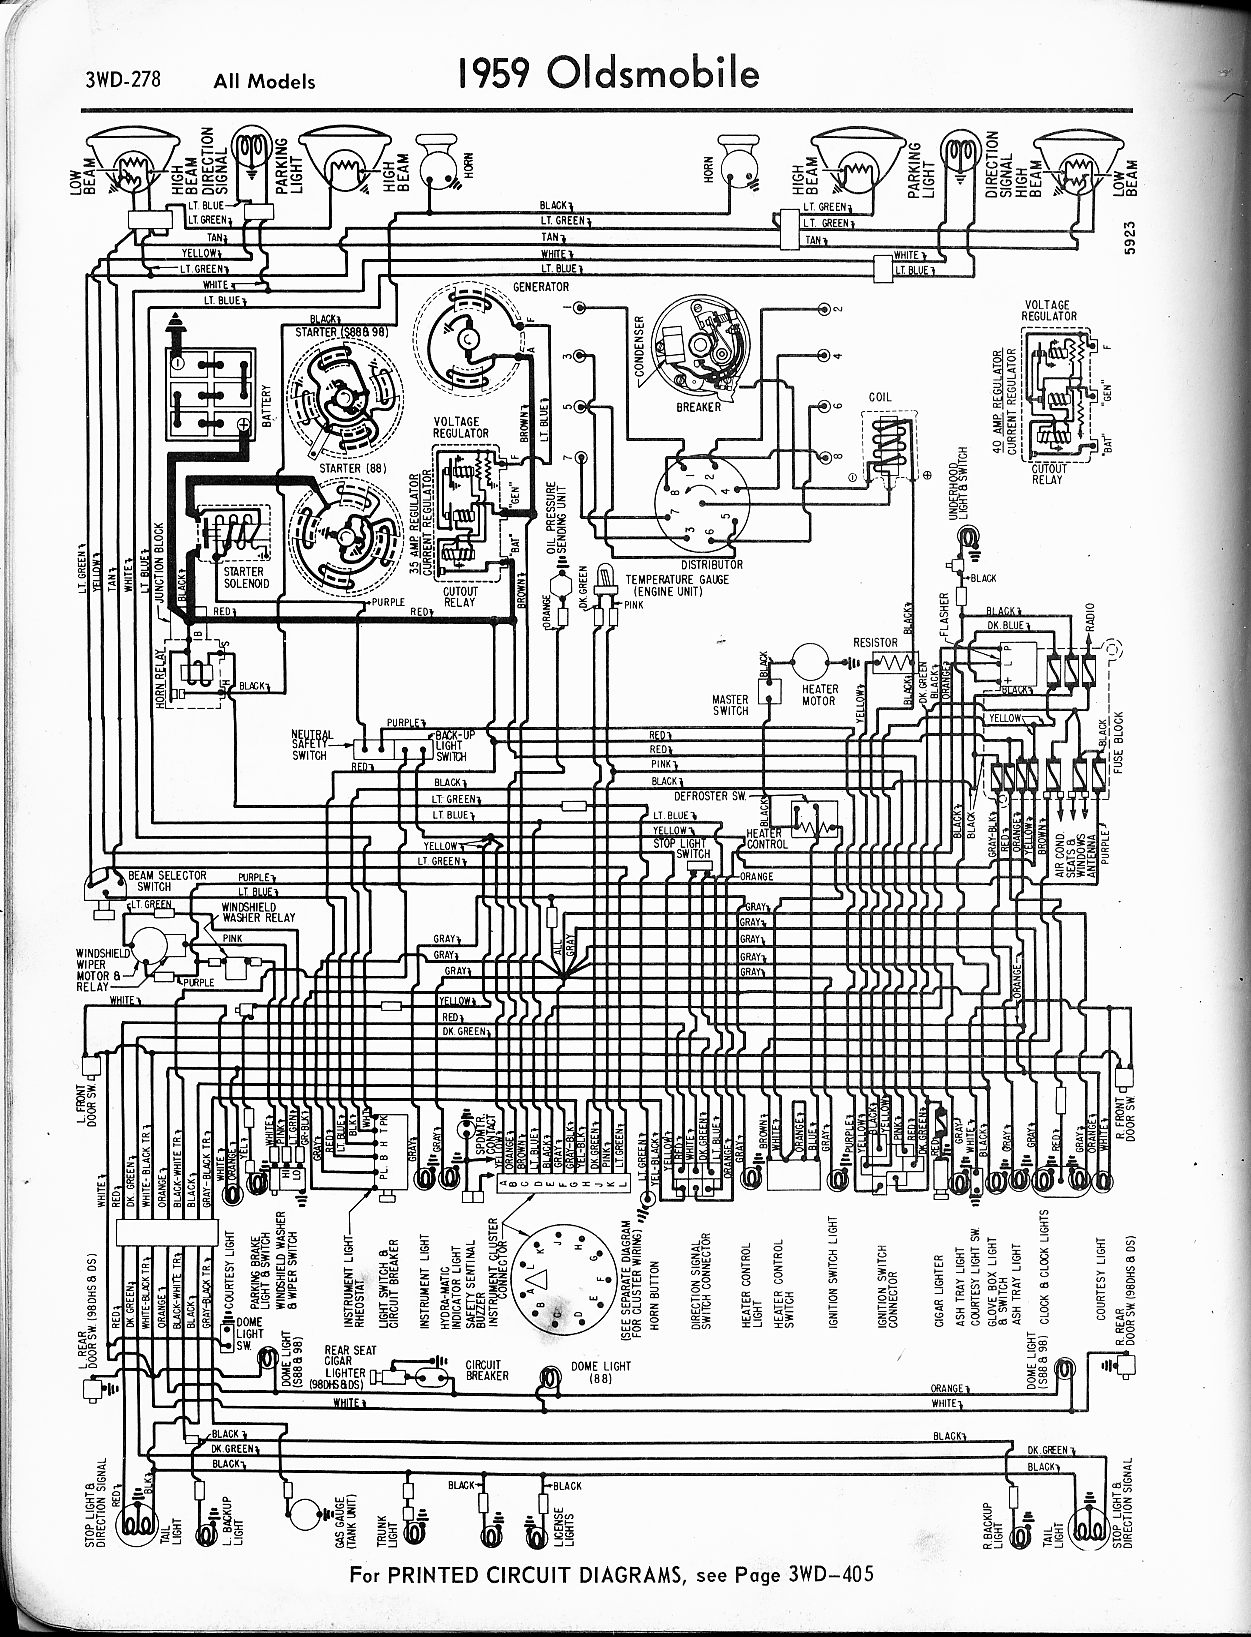 MWire5765 278 oldsmobile wiring diagrams the old car manual project 1984 oldsmobile delta 88 wiring diagram at soozxer.org